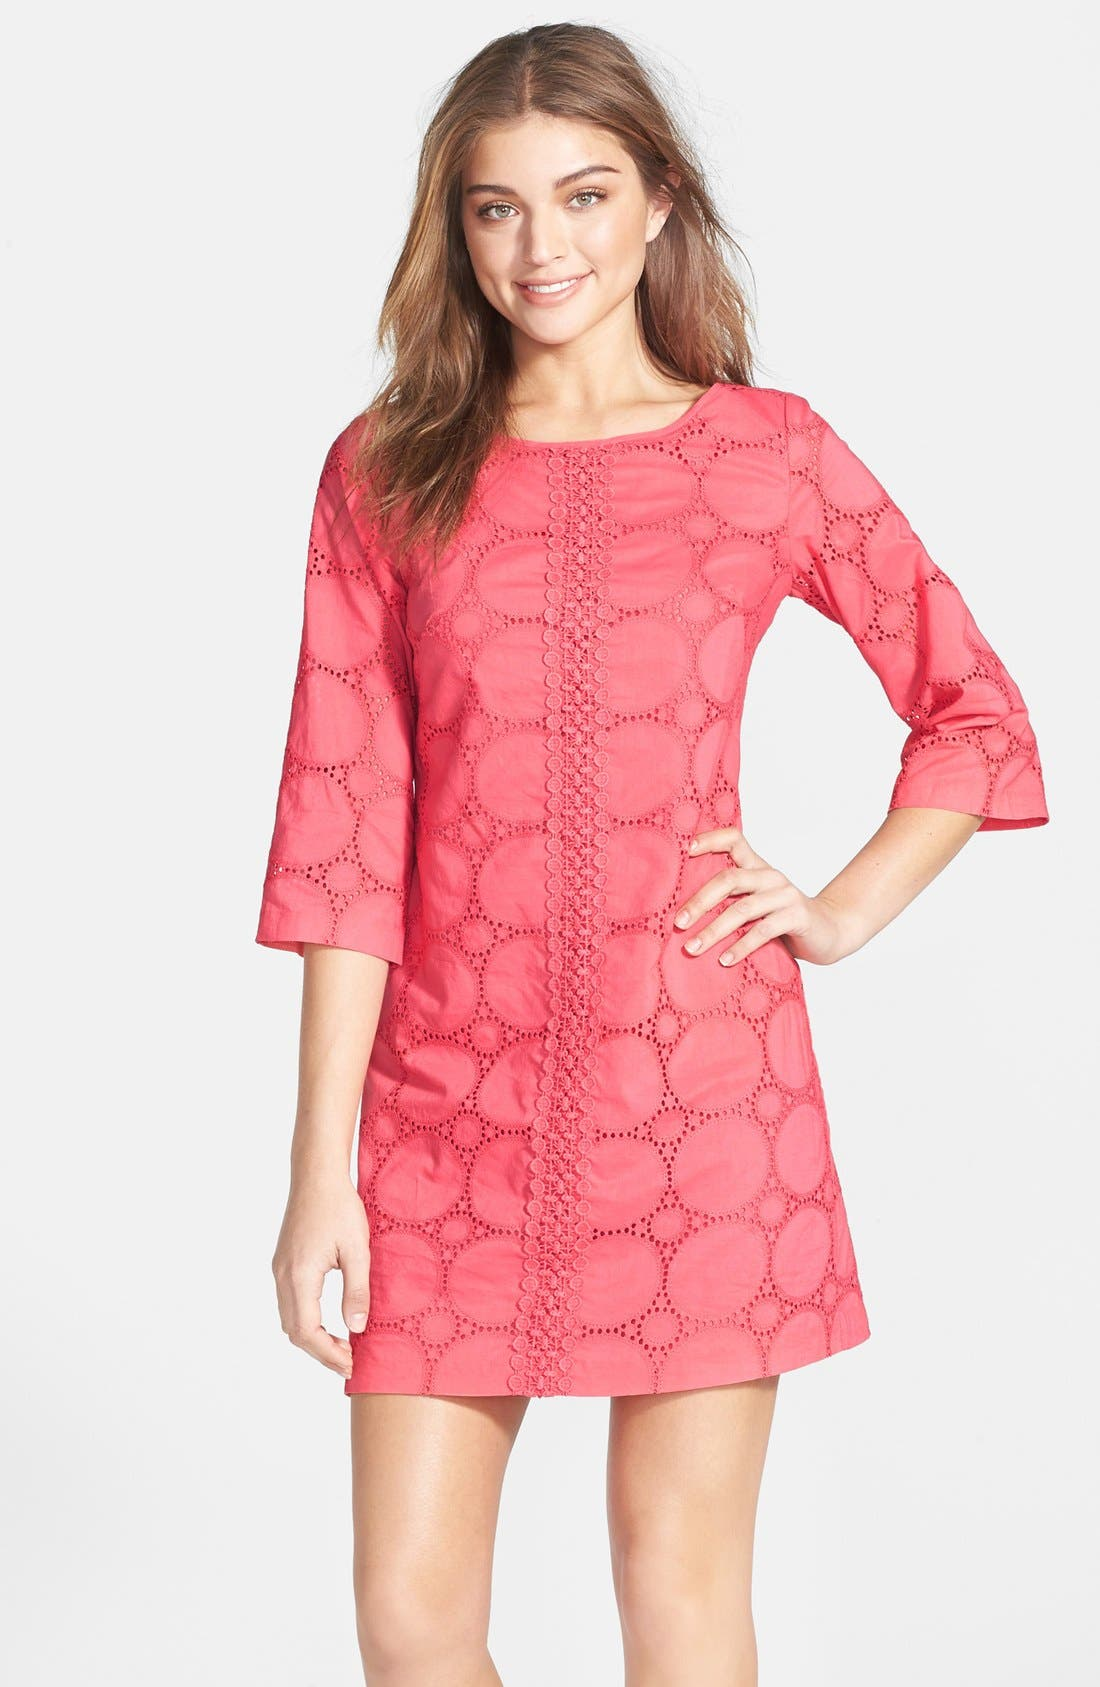 Alternate Image 1 Selected - Eliza J Cotton Lace Tunic Dress (Petite)